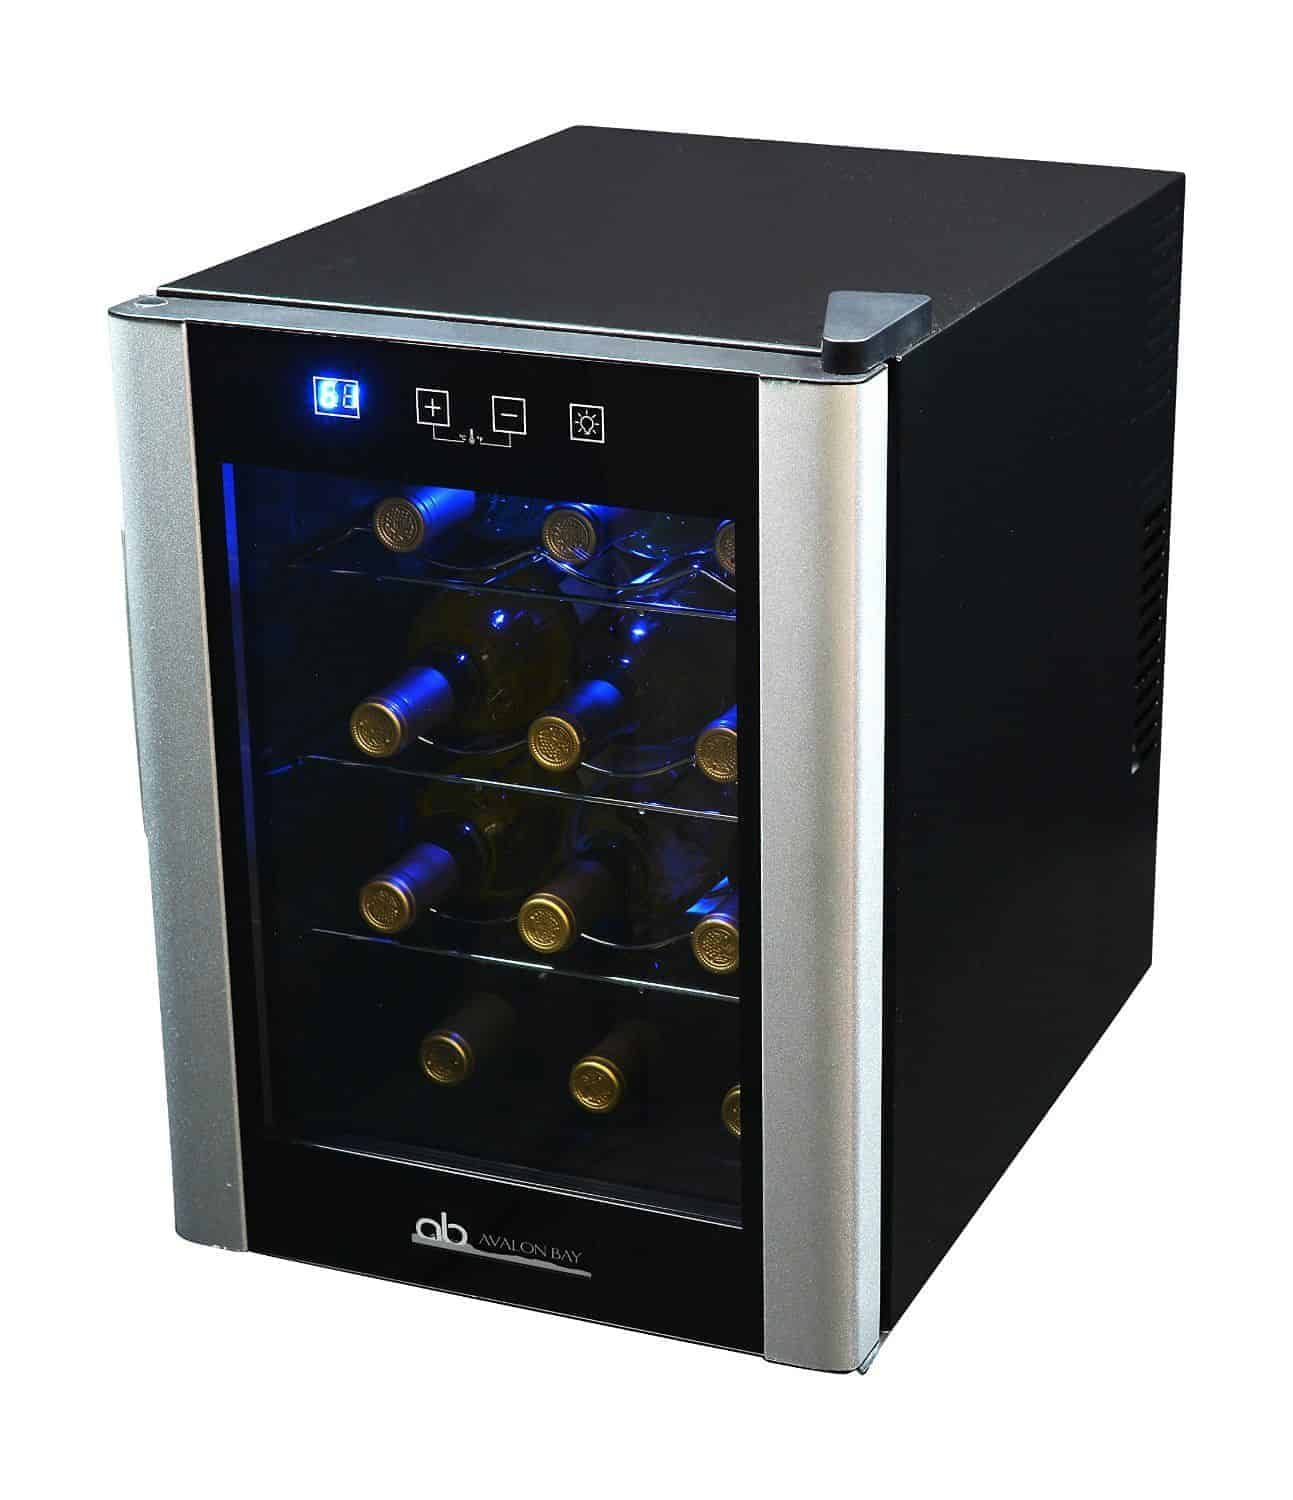 Avalon Bay 12 AB-WINE12S Bottle Single Zone Wine Cooler